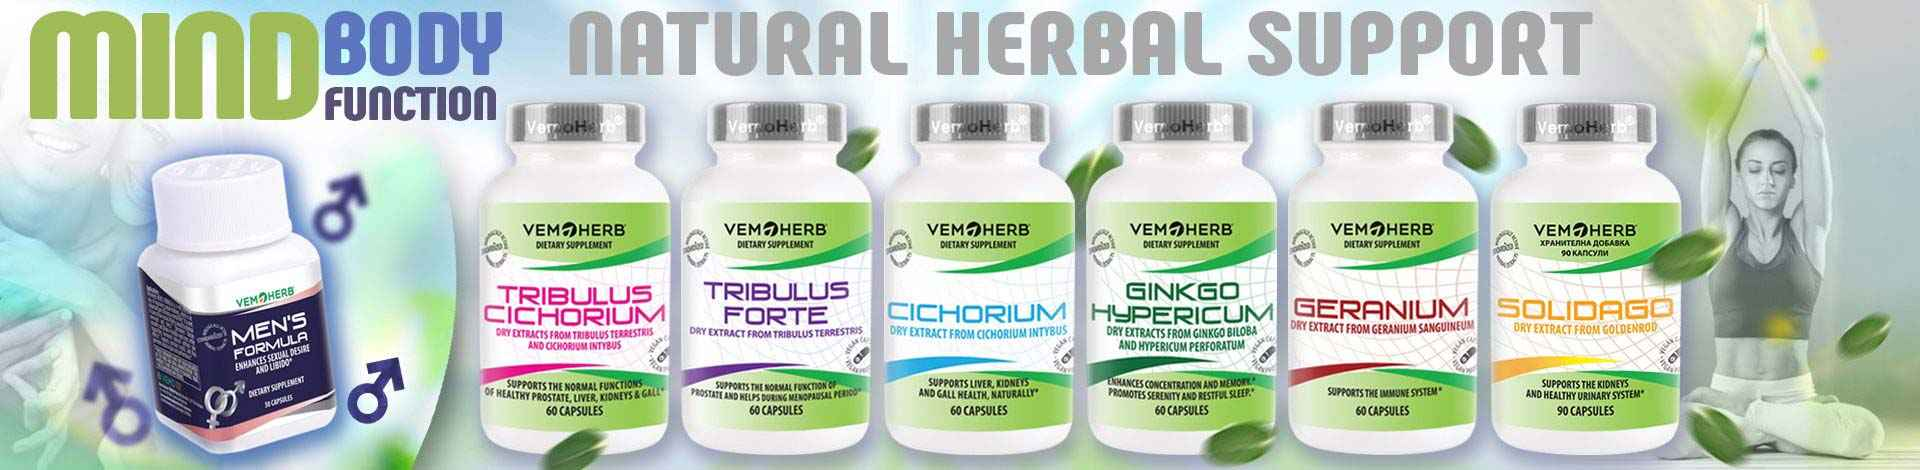 VemoHerb - Superpremium Quality Herbal Supplements for health